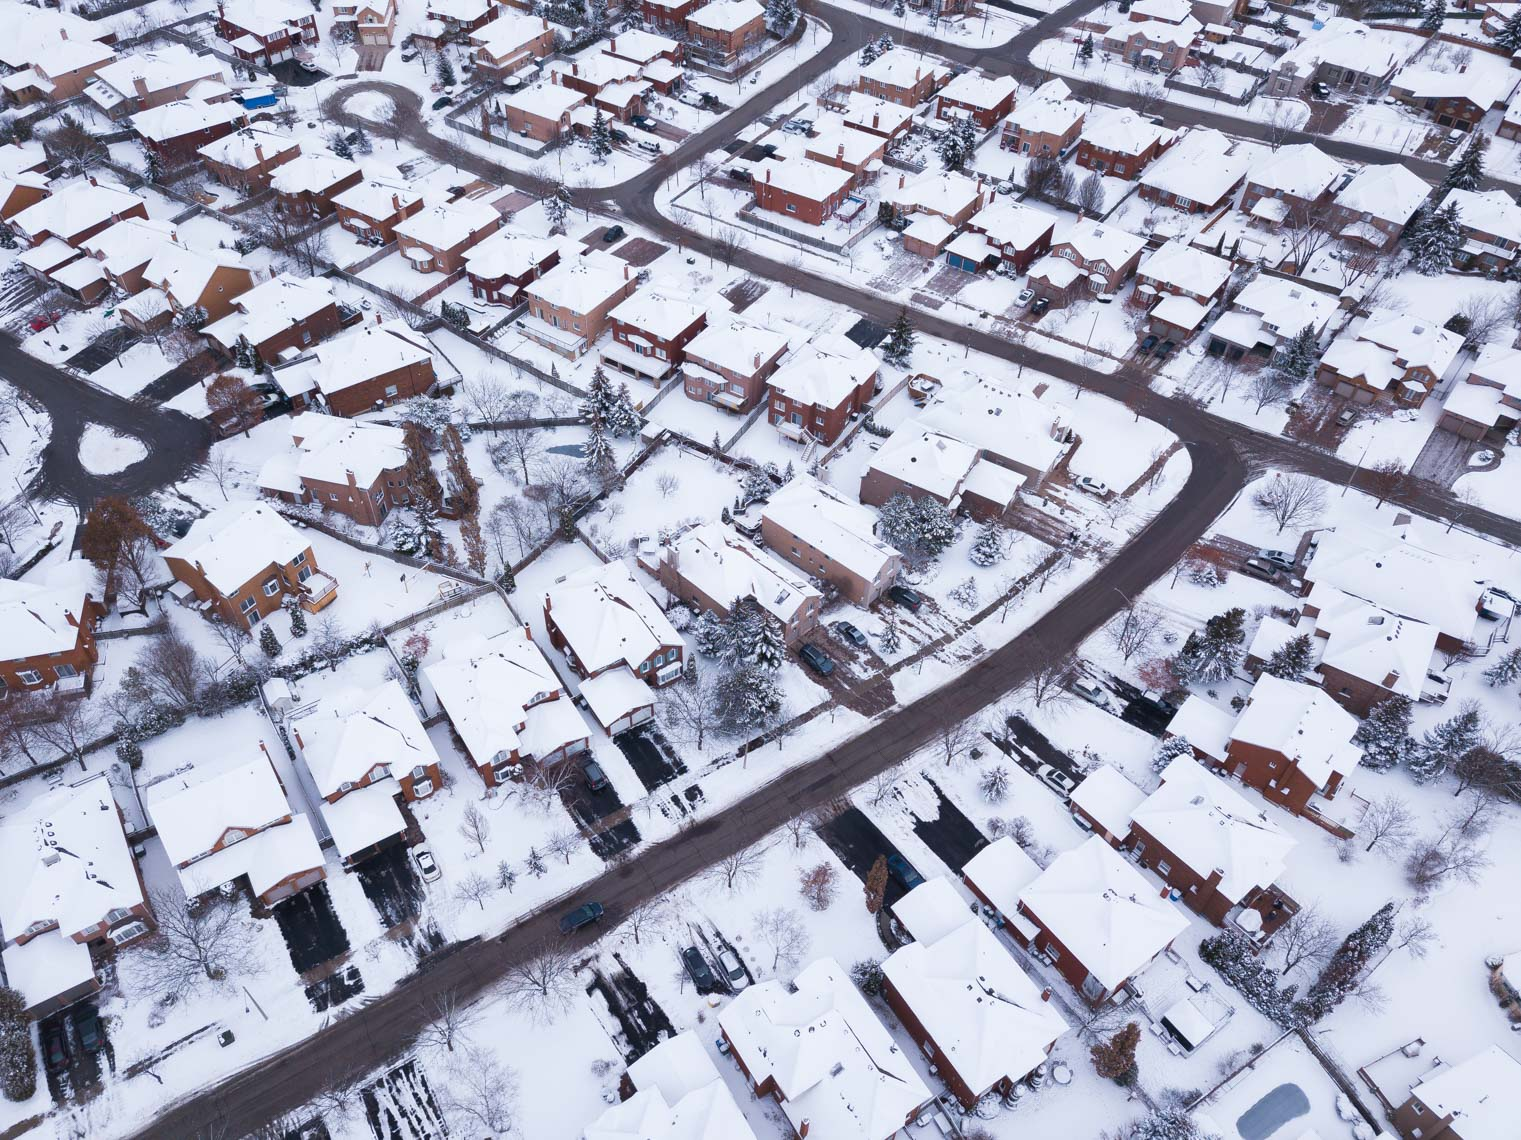 Aerial view of snowy Mississauga subdivisions in winter